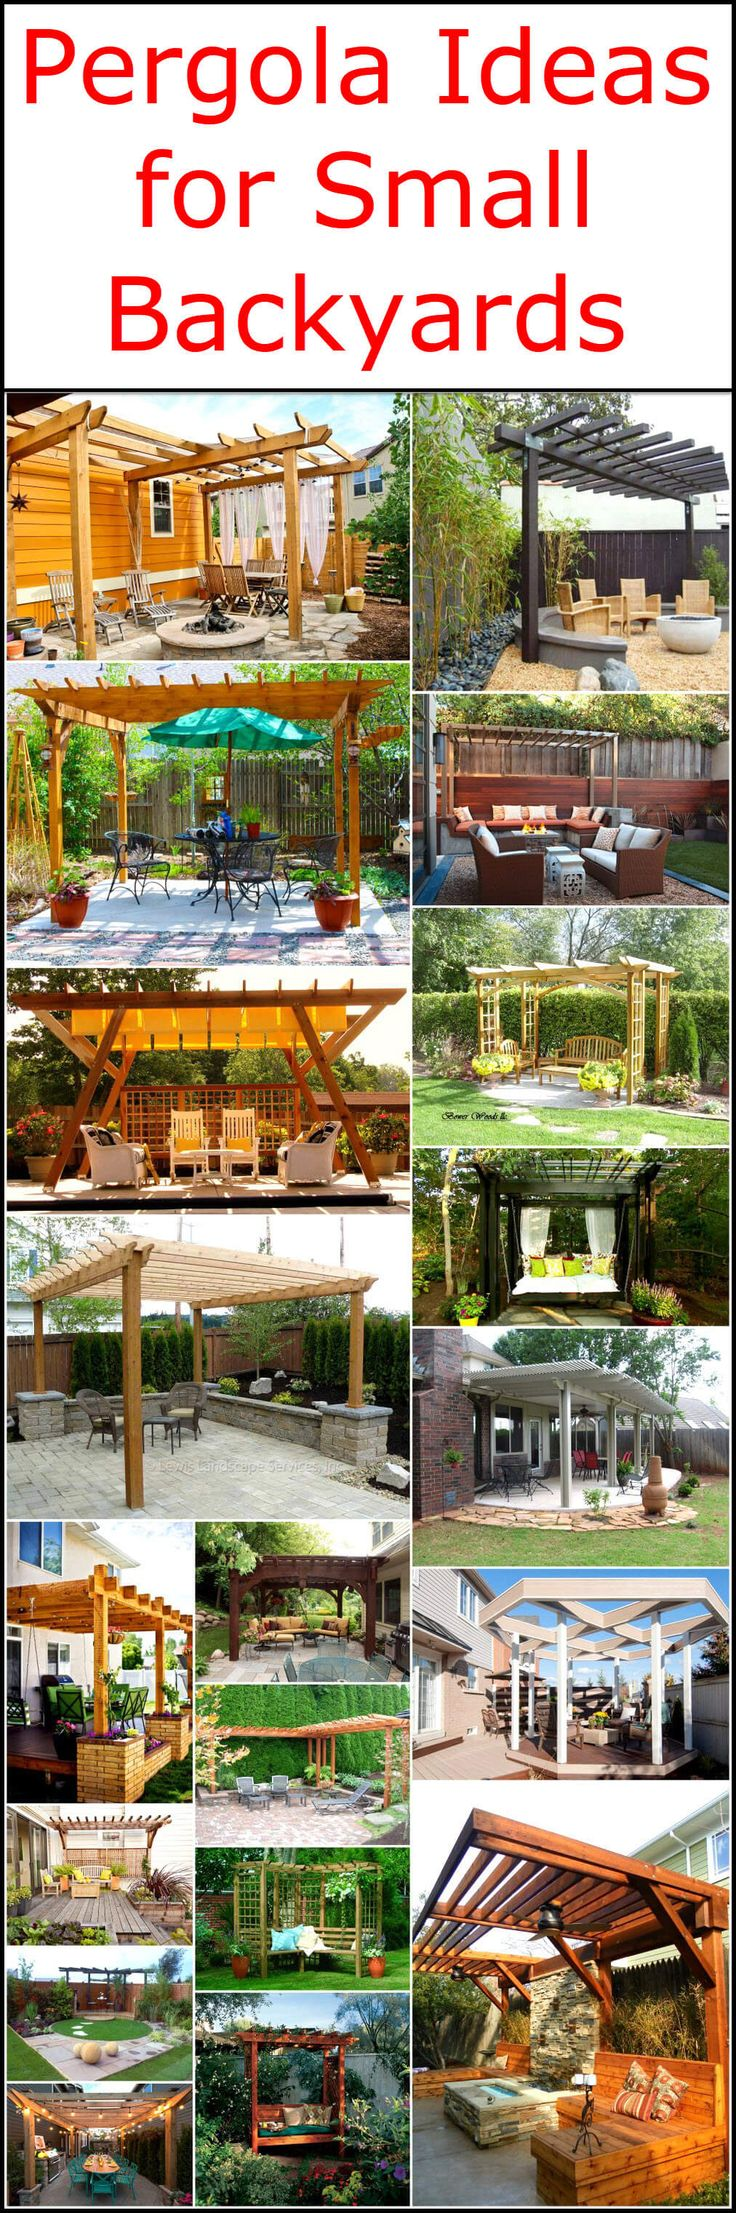 39 best backyard ideas images on pinterest beach house